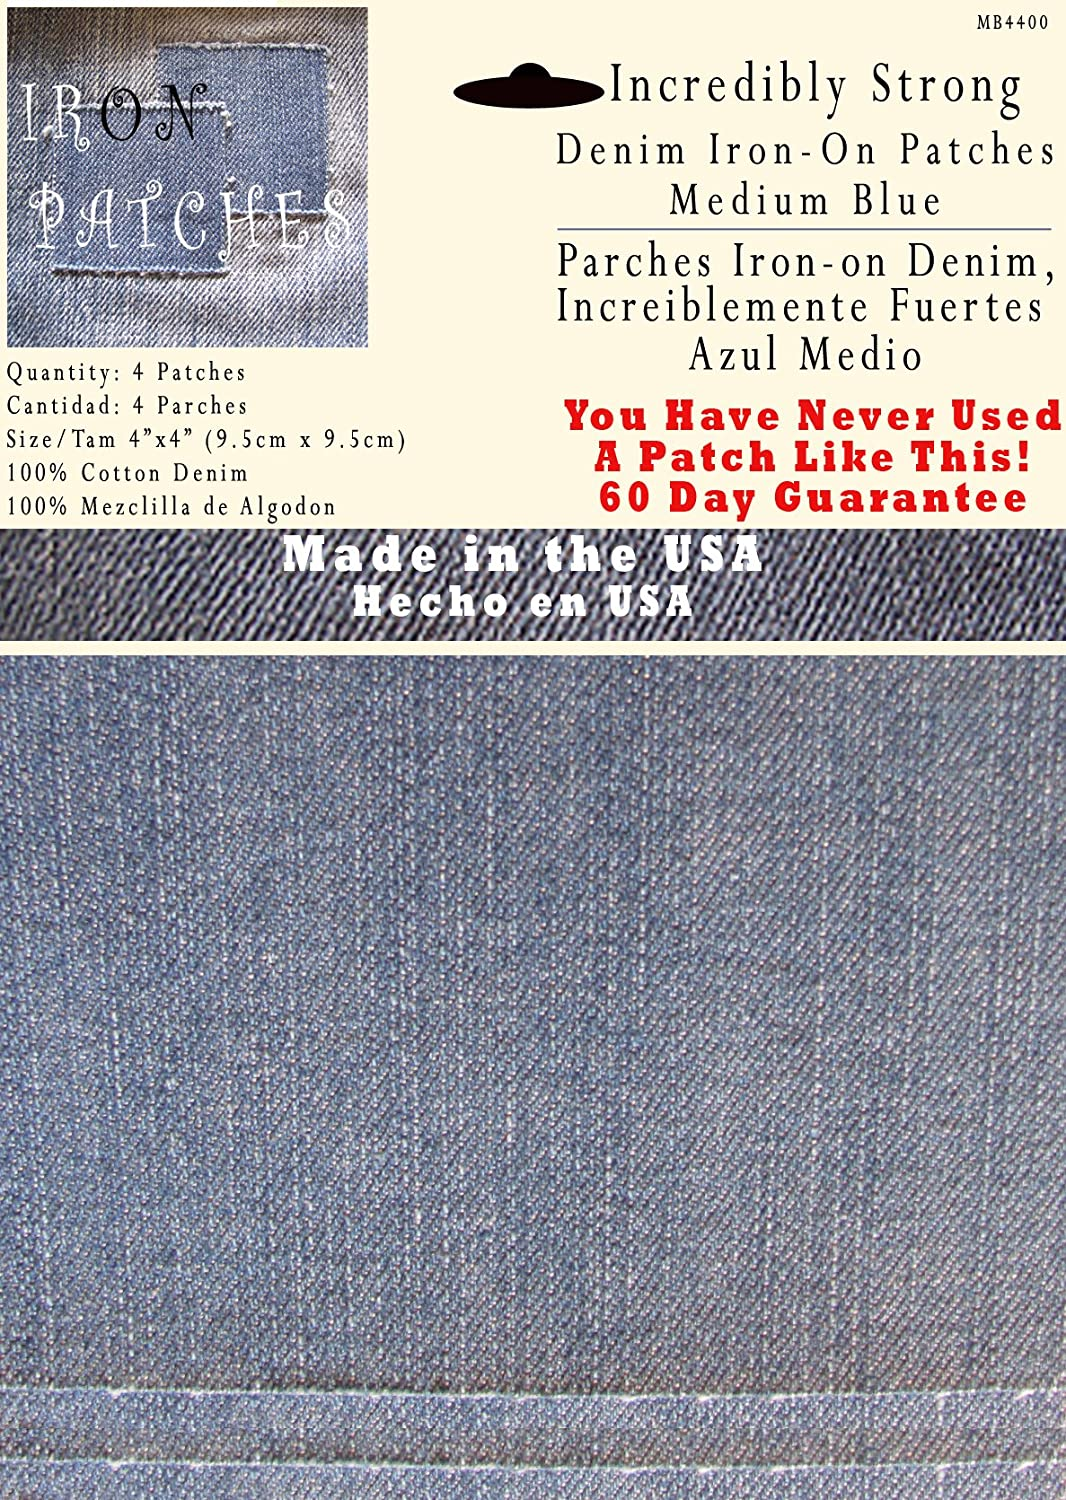 4 Medium Blue 4x4 Iron on Patches Strongest Iron on Denim Jean Patch